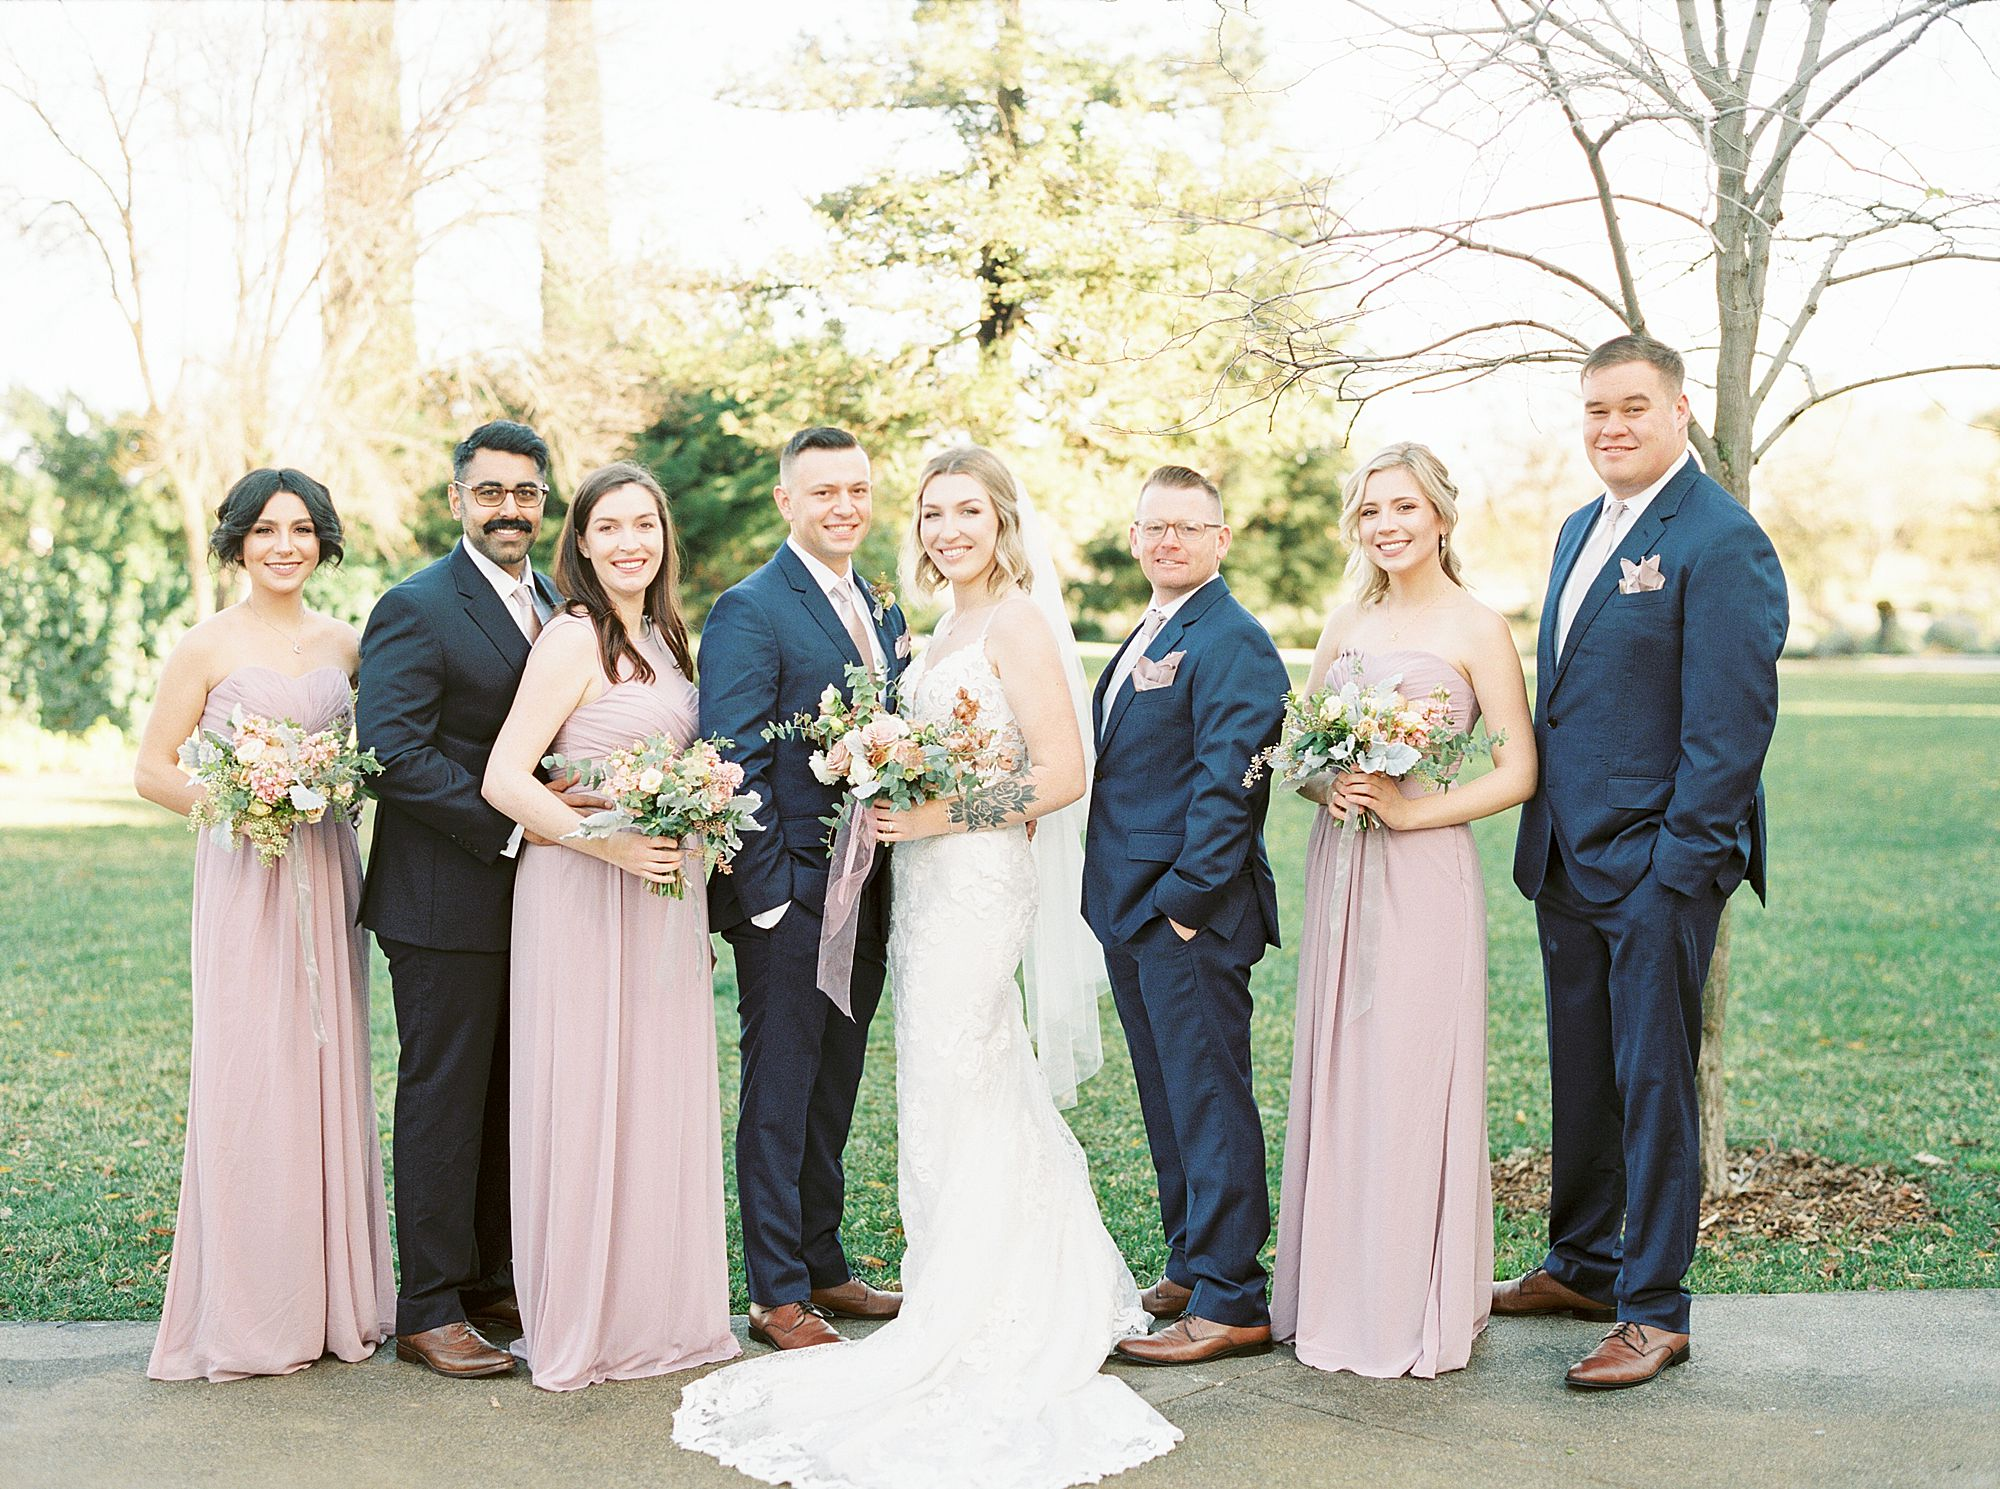 Inn at Park Winters Wedding - Lindsay and Shane - Ashley Baumgartner - Park Winters Wedding Photographer - Sacramento Wedding Photographer_0036.jpg